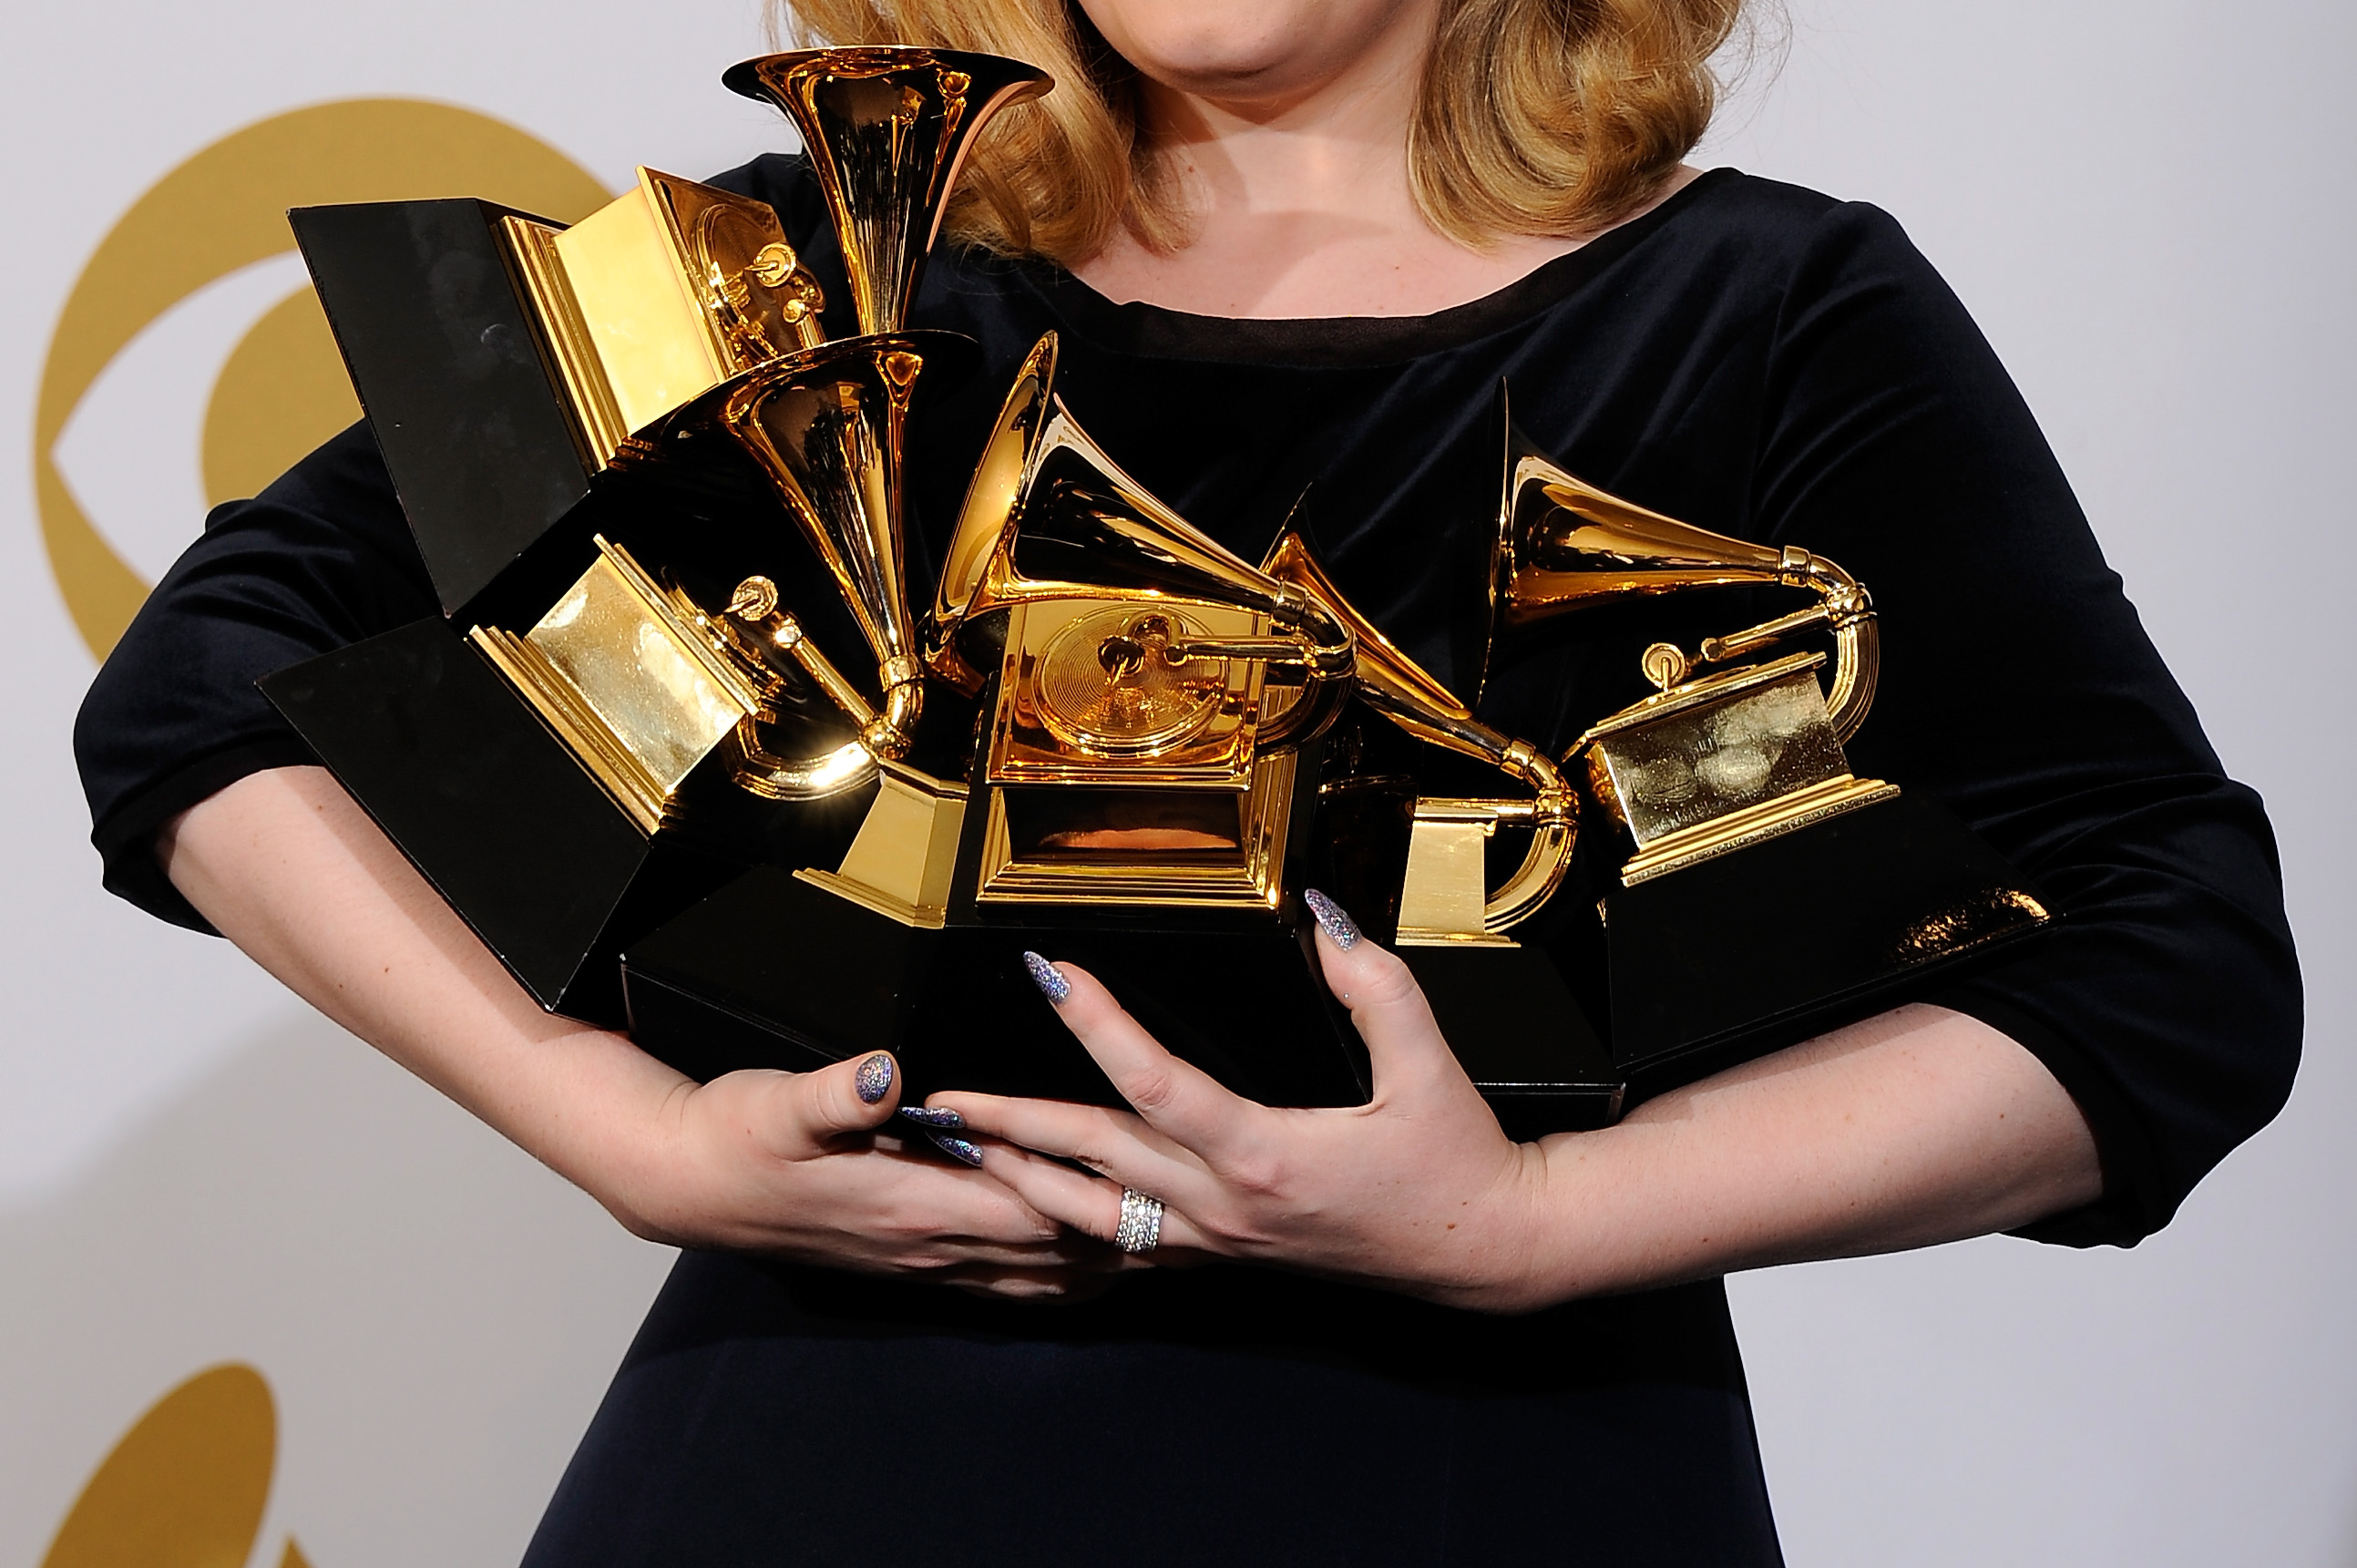 """LOS ANGELES, CA - FEBRUARY 12:  Singer Adele, winner of the GRAMMYs for Record of the Year for """"Rolling In The Deep"""", Album of the Year for """"21"""", Song of the Year for """"Rolling In The Deep"""", Best Pop Solo Performance for """"Someone Like You"""", Best Pop Vocal Album for """"21"""" and Best Short Form Music Video for """"Rolling In The Deep"""", poses in the press room at the 54th Annual GRAMMY Awards at Staples Center on February 12, 2012 in Los Angeles, California.  (Photo by Kevork Djansezian/Getty Images)"""